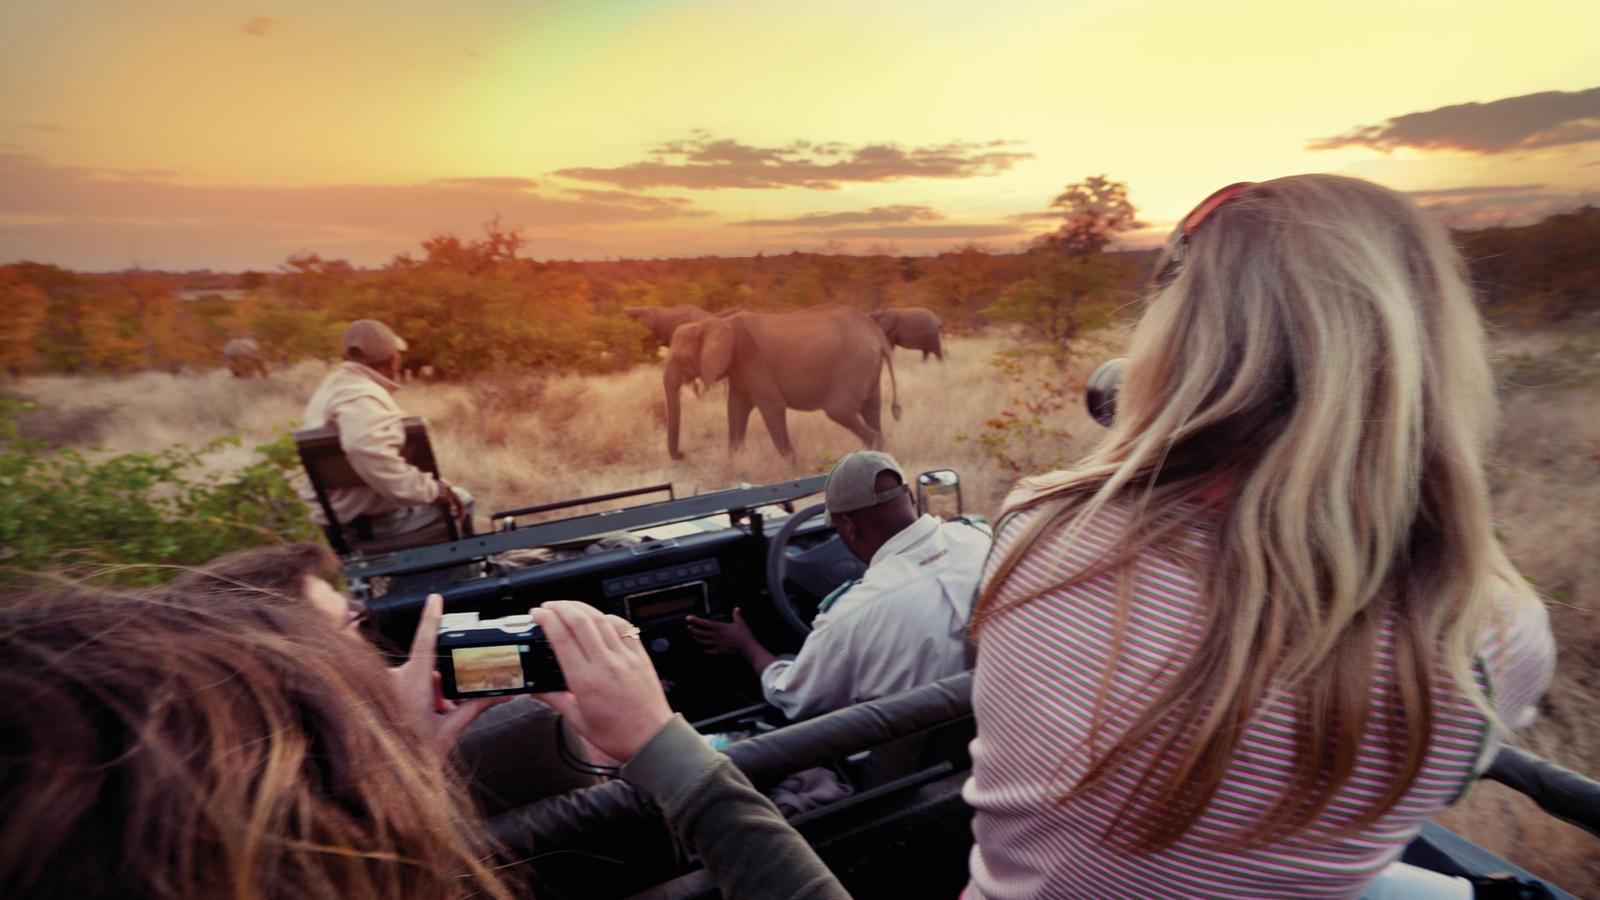 Adventure Travel To South Africa